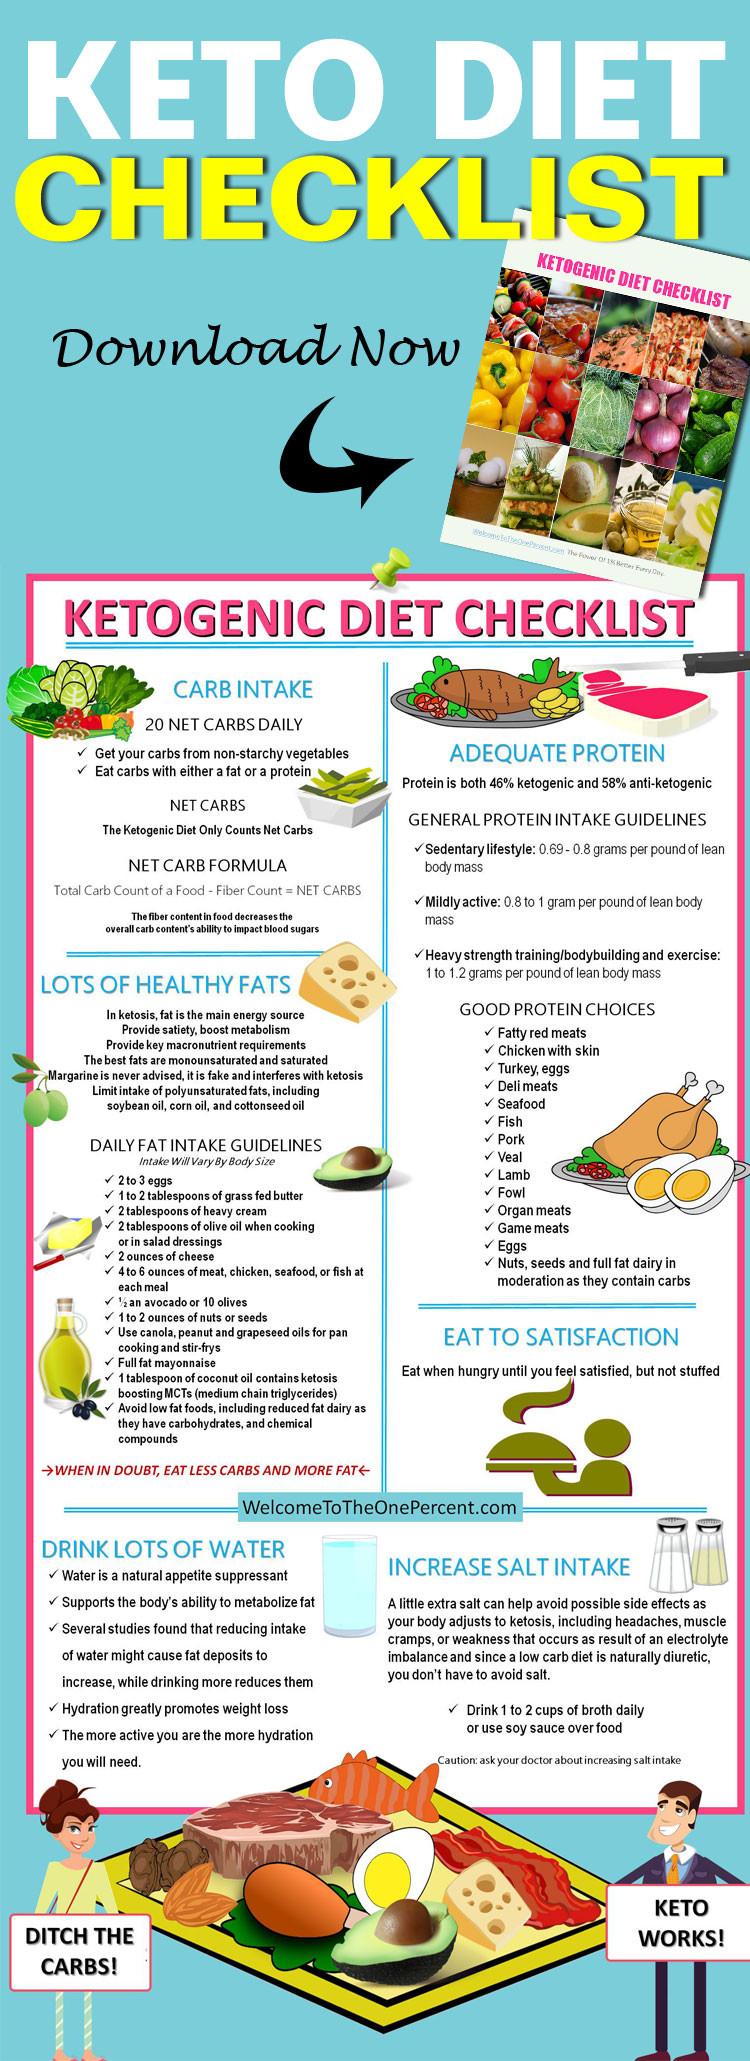 Keto Diet Healthy  6 Easy Steps to Getting into Ketosis Quickly Download